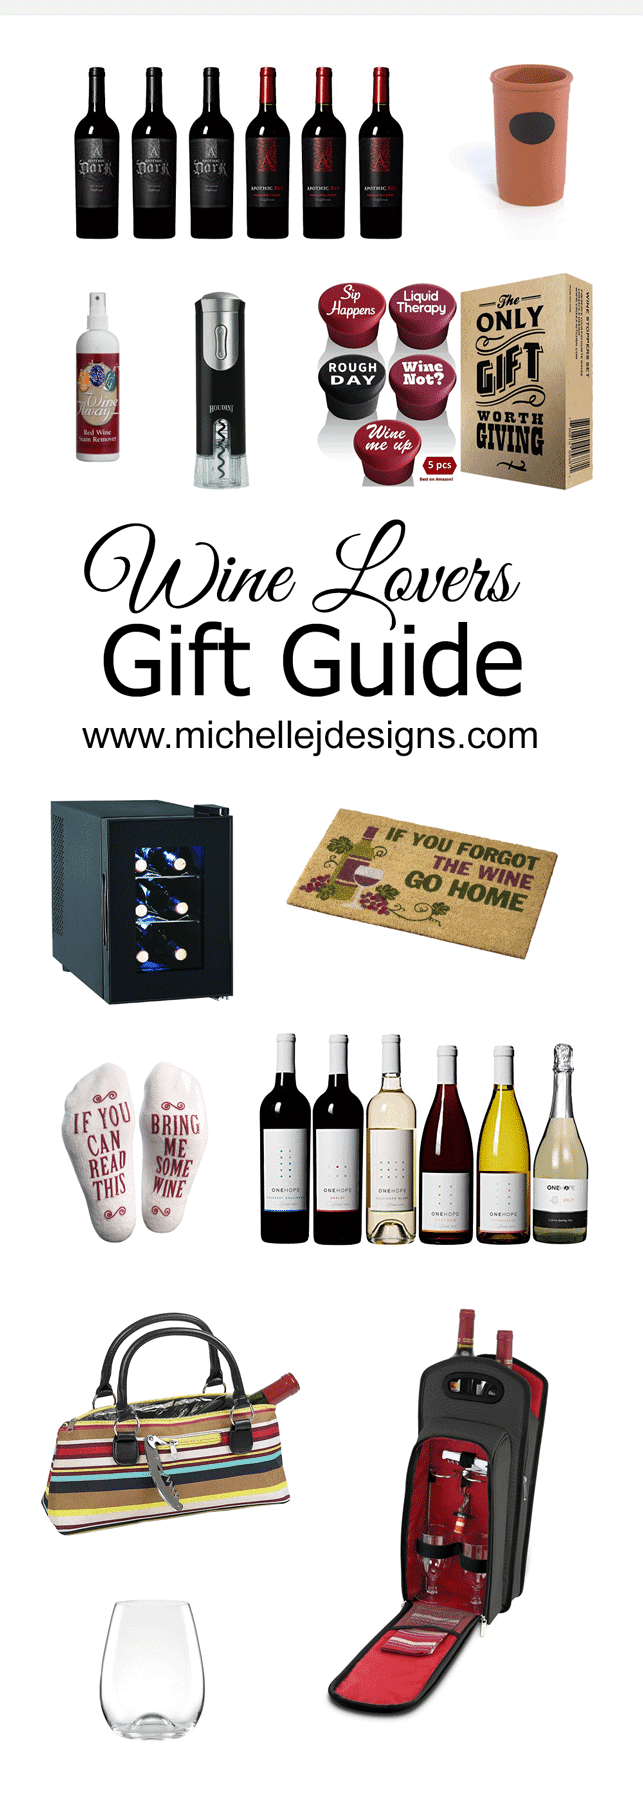 Are you wine lover? I bet if you aren't one of your best friends or family member is. That is why I created the Wine Lovers Gift Guide. It has a variety of products and prices for any occasion. www.michellejdesigns.com